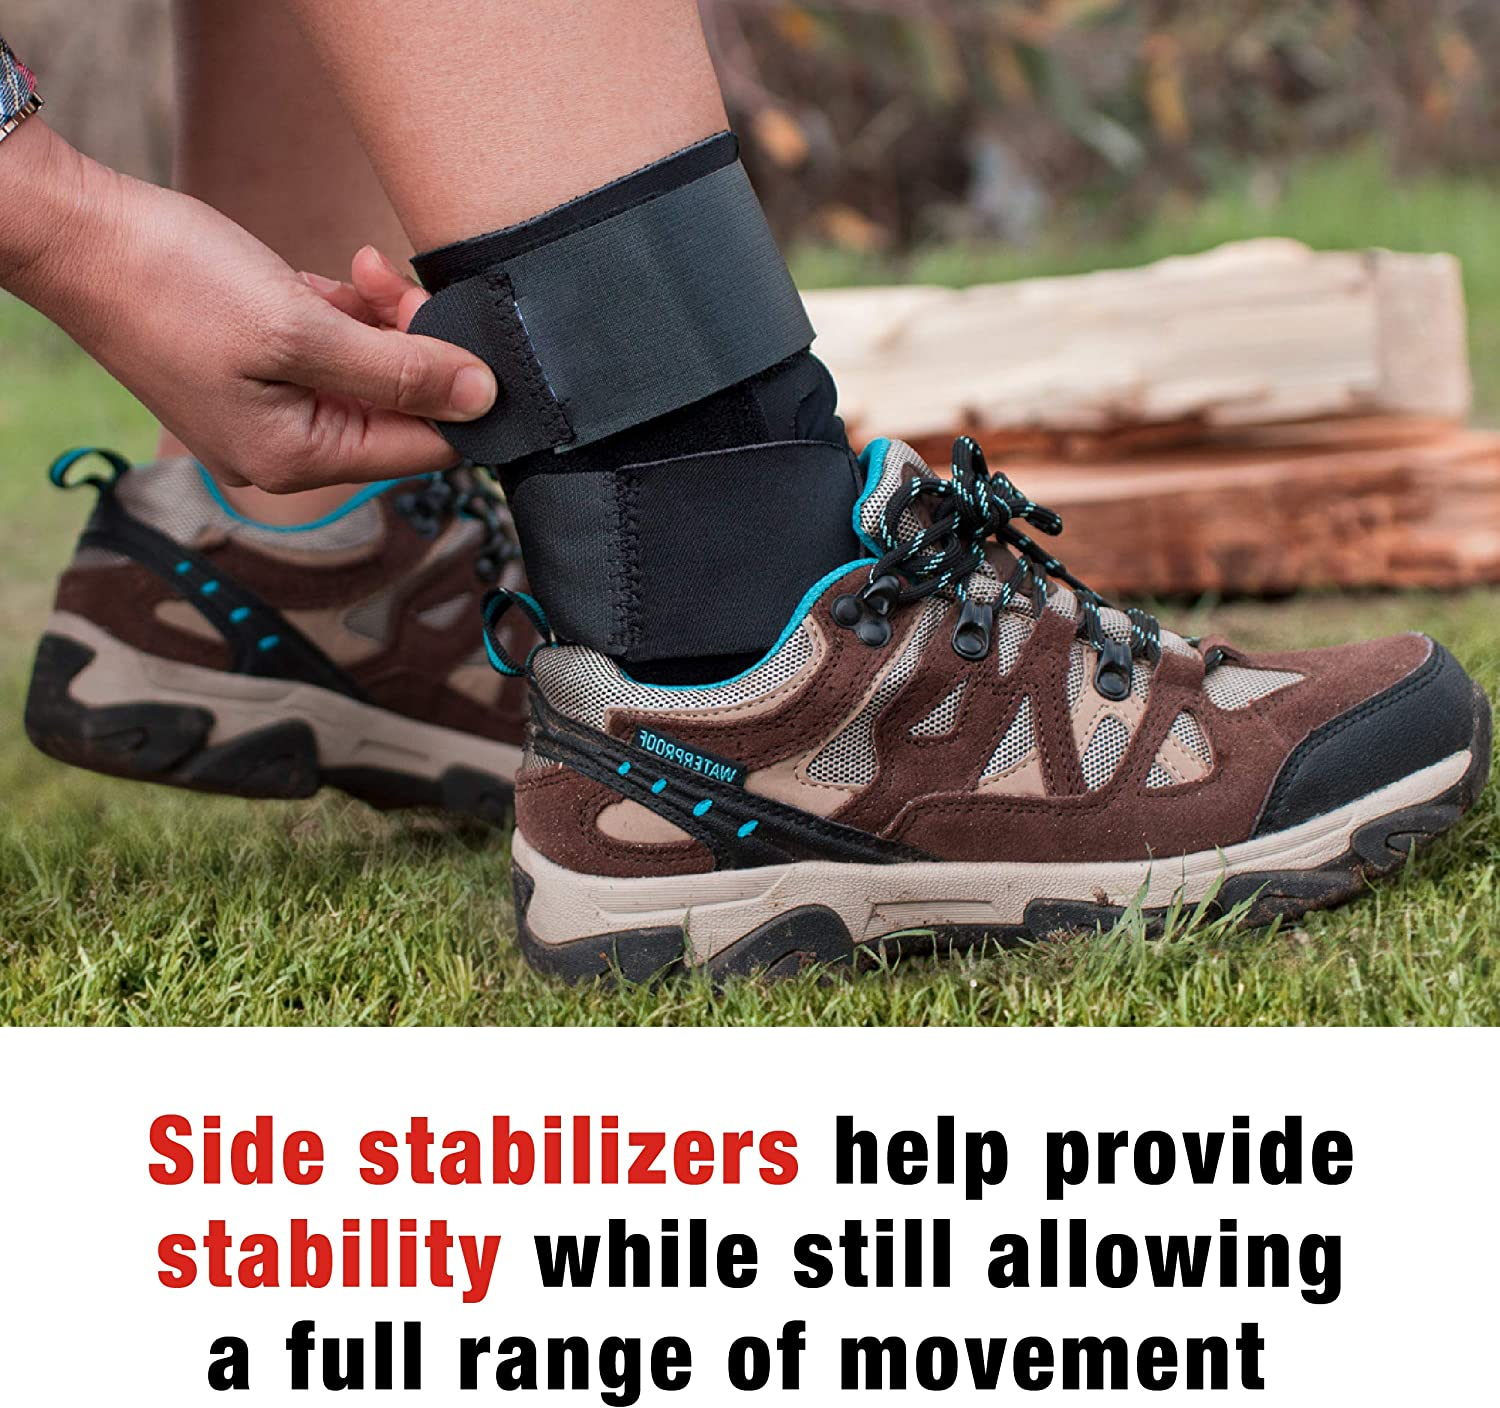 ACE Deluxe Ankle Stabilizer, Support to sprained or strained ankle, Satisfaction Guarantee, One Size Fits Most: Health & Personal Care